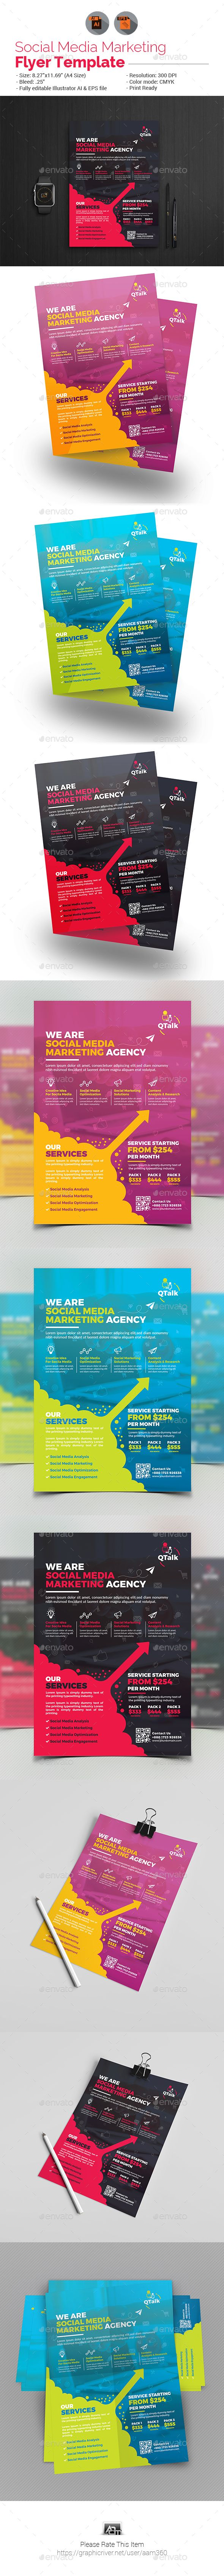 Social Media Marketing #Flyer V2 - #Corporate Flyers Download here: https://graphicriver.net/item/social-media-marketing-flyer-v2/19598085?ref=alena994